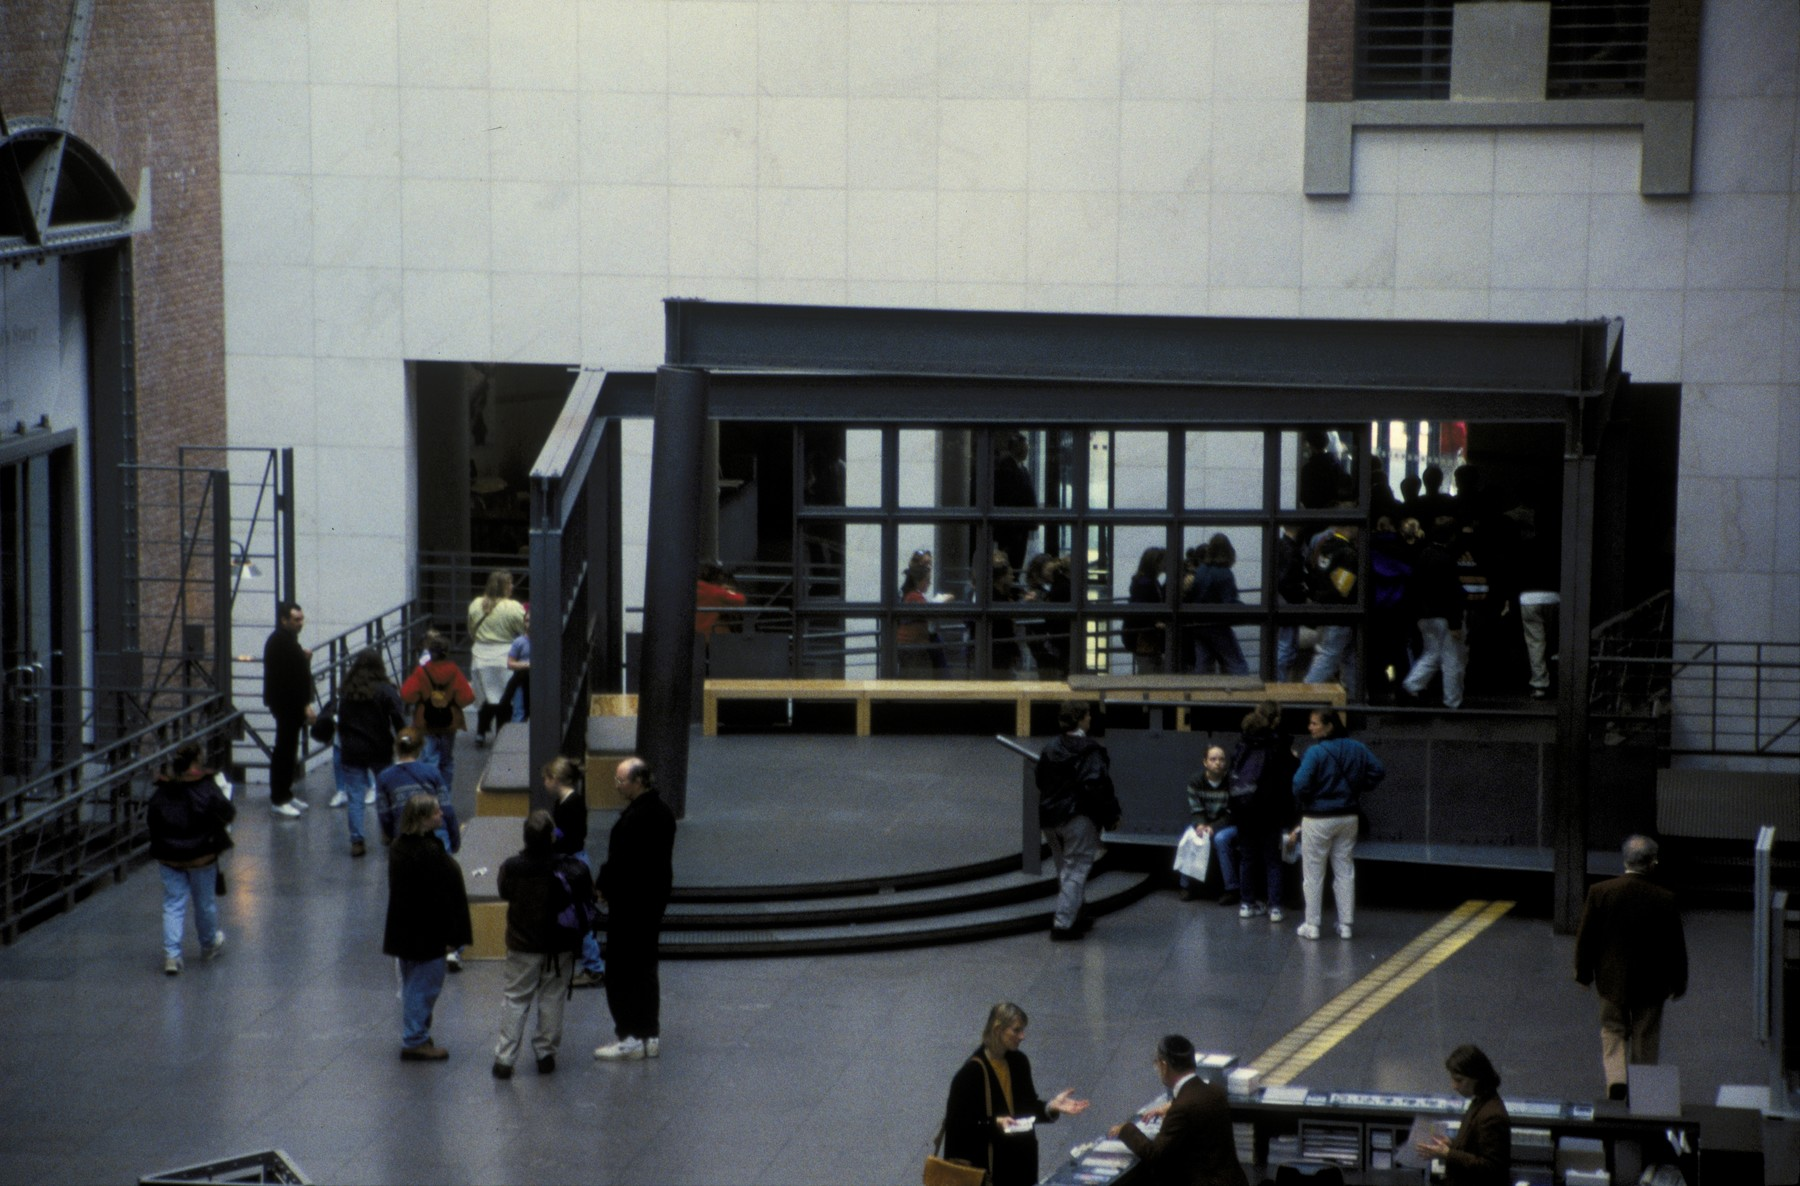 Visitors in the Hall of Witness at the U.S. Holocaust Memorial Museum.